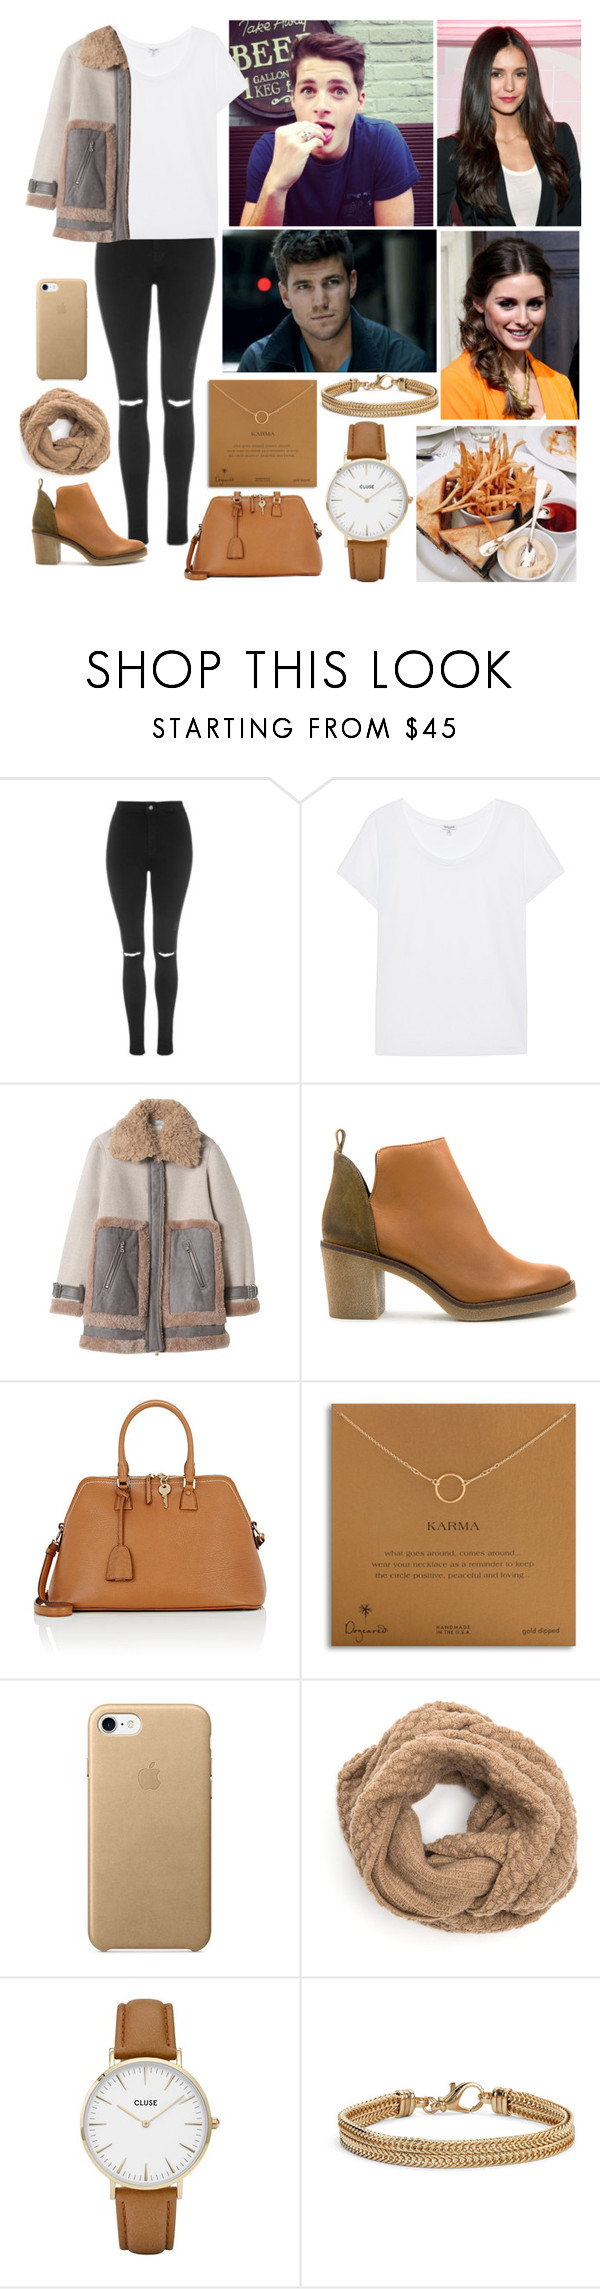 """""""Spending the afternoon with my siblings in London."""" by duchessamparo ❤ liked on Polyvore featuring Topshop, Splendid, Miista, Maison Margiela, Dogeared, CLUSE and Blue Nile"""